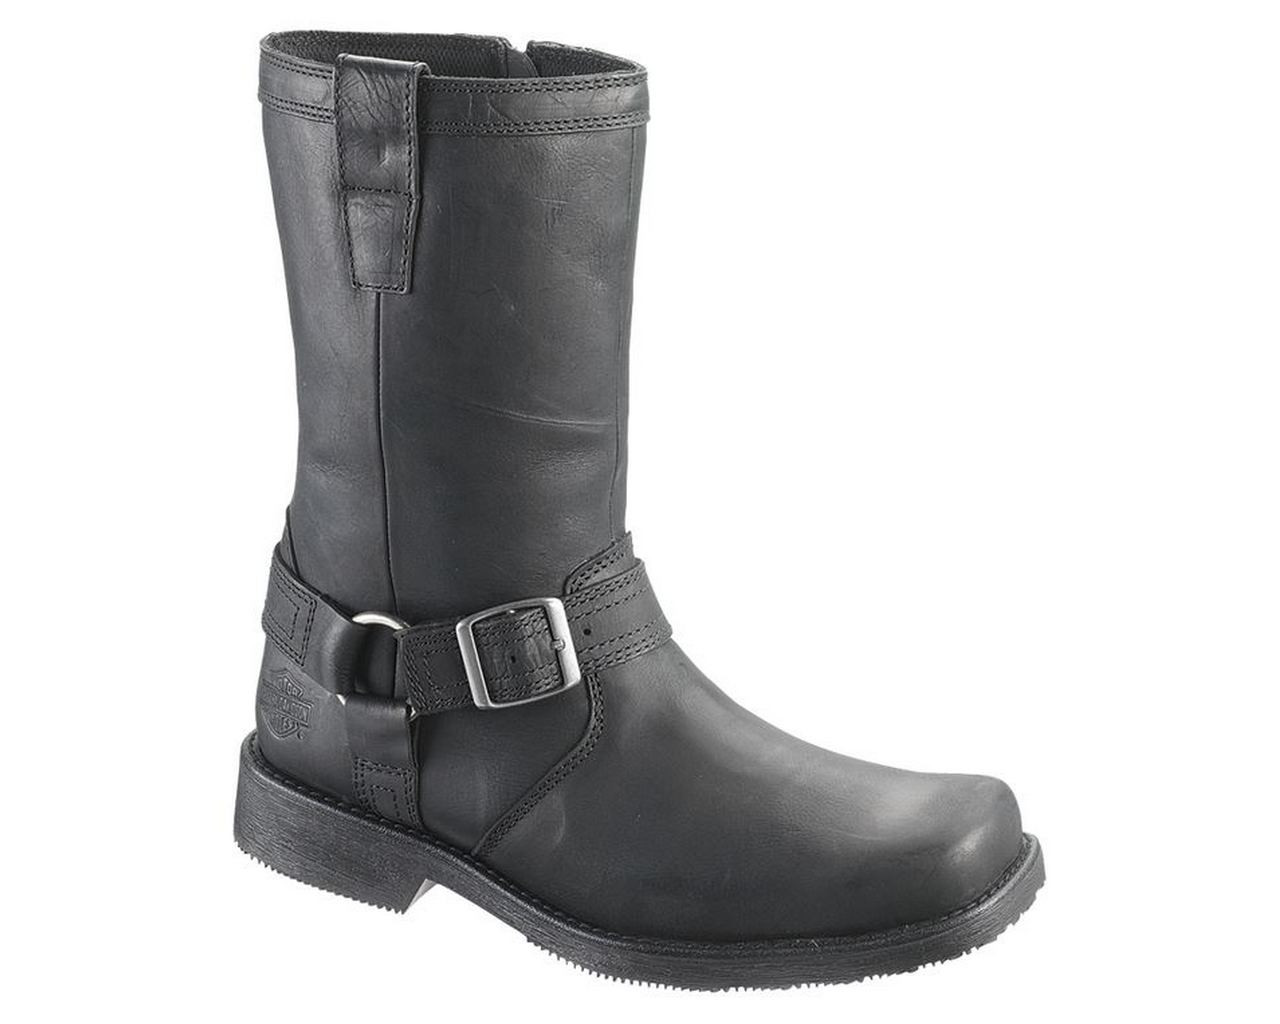 17a5f3b96194 Harley-Davidson® Men s Camden 9-Inch Black or Brown Boots. Inside Zip  93118 93119 - Wisconsin Harley-Davidson